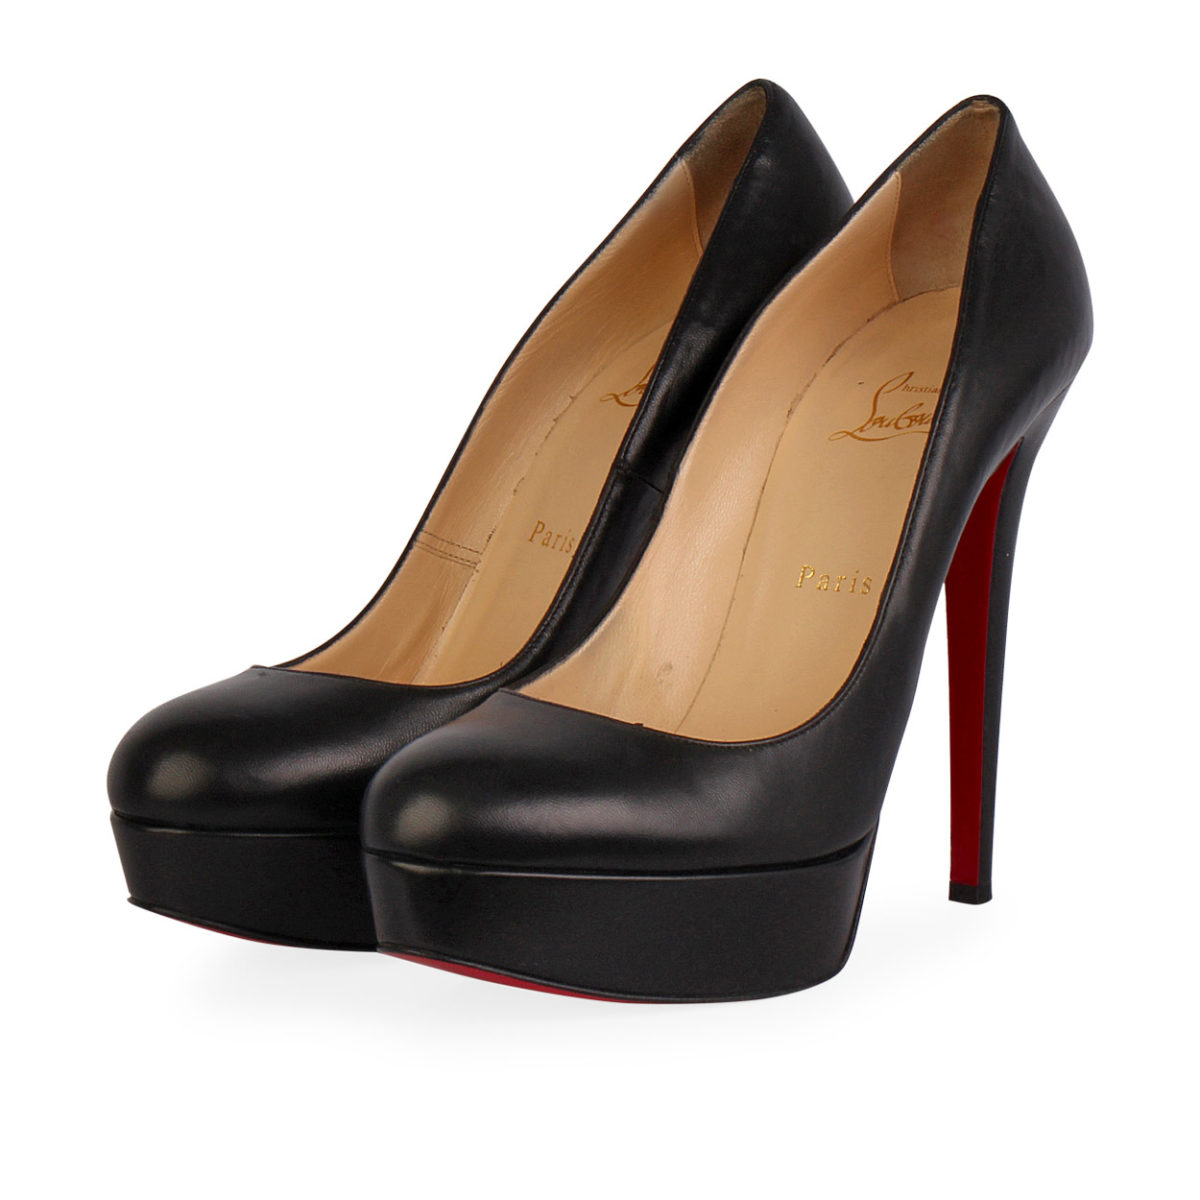 low priced 23582 c75de CHRISTIAN LOUBOUTIN Leather Bianca 140 Pumps Black - S: 39.5 (6)